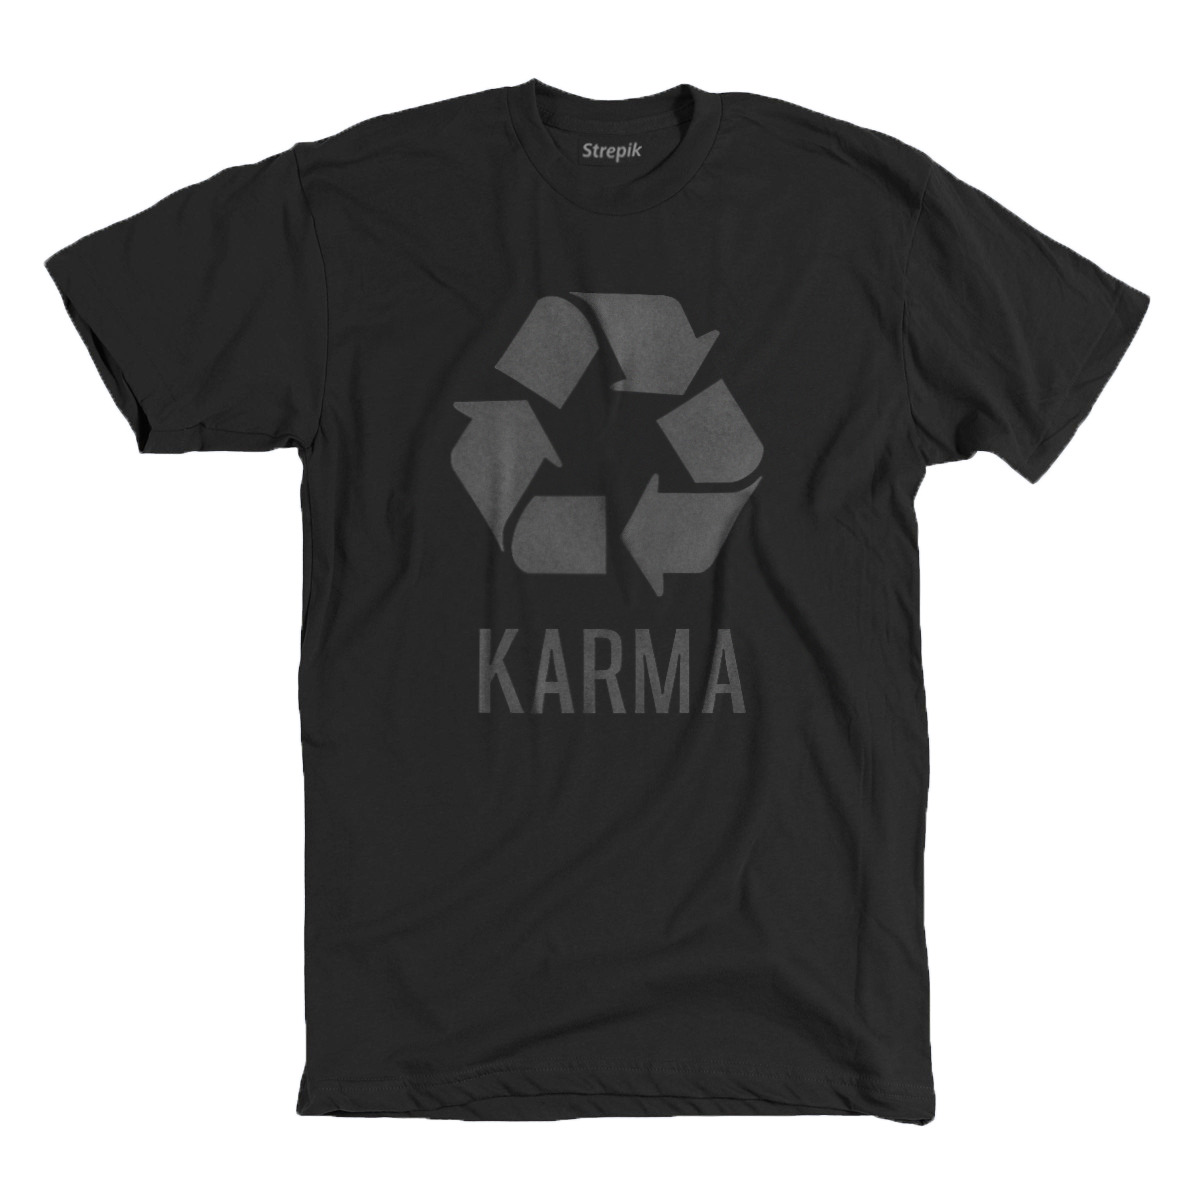 Strepik's Karma Tee$24 - Ships internationally